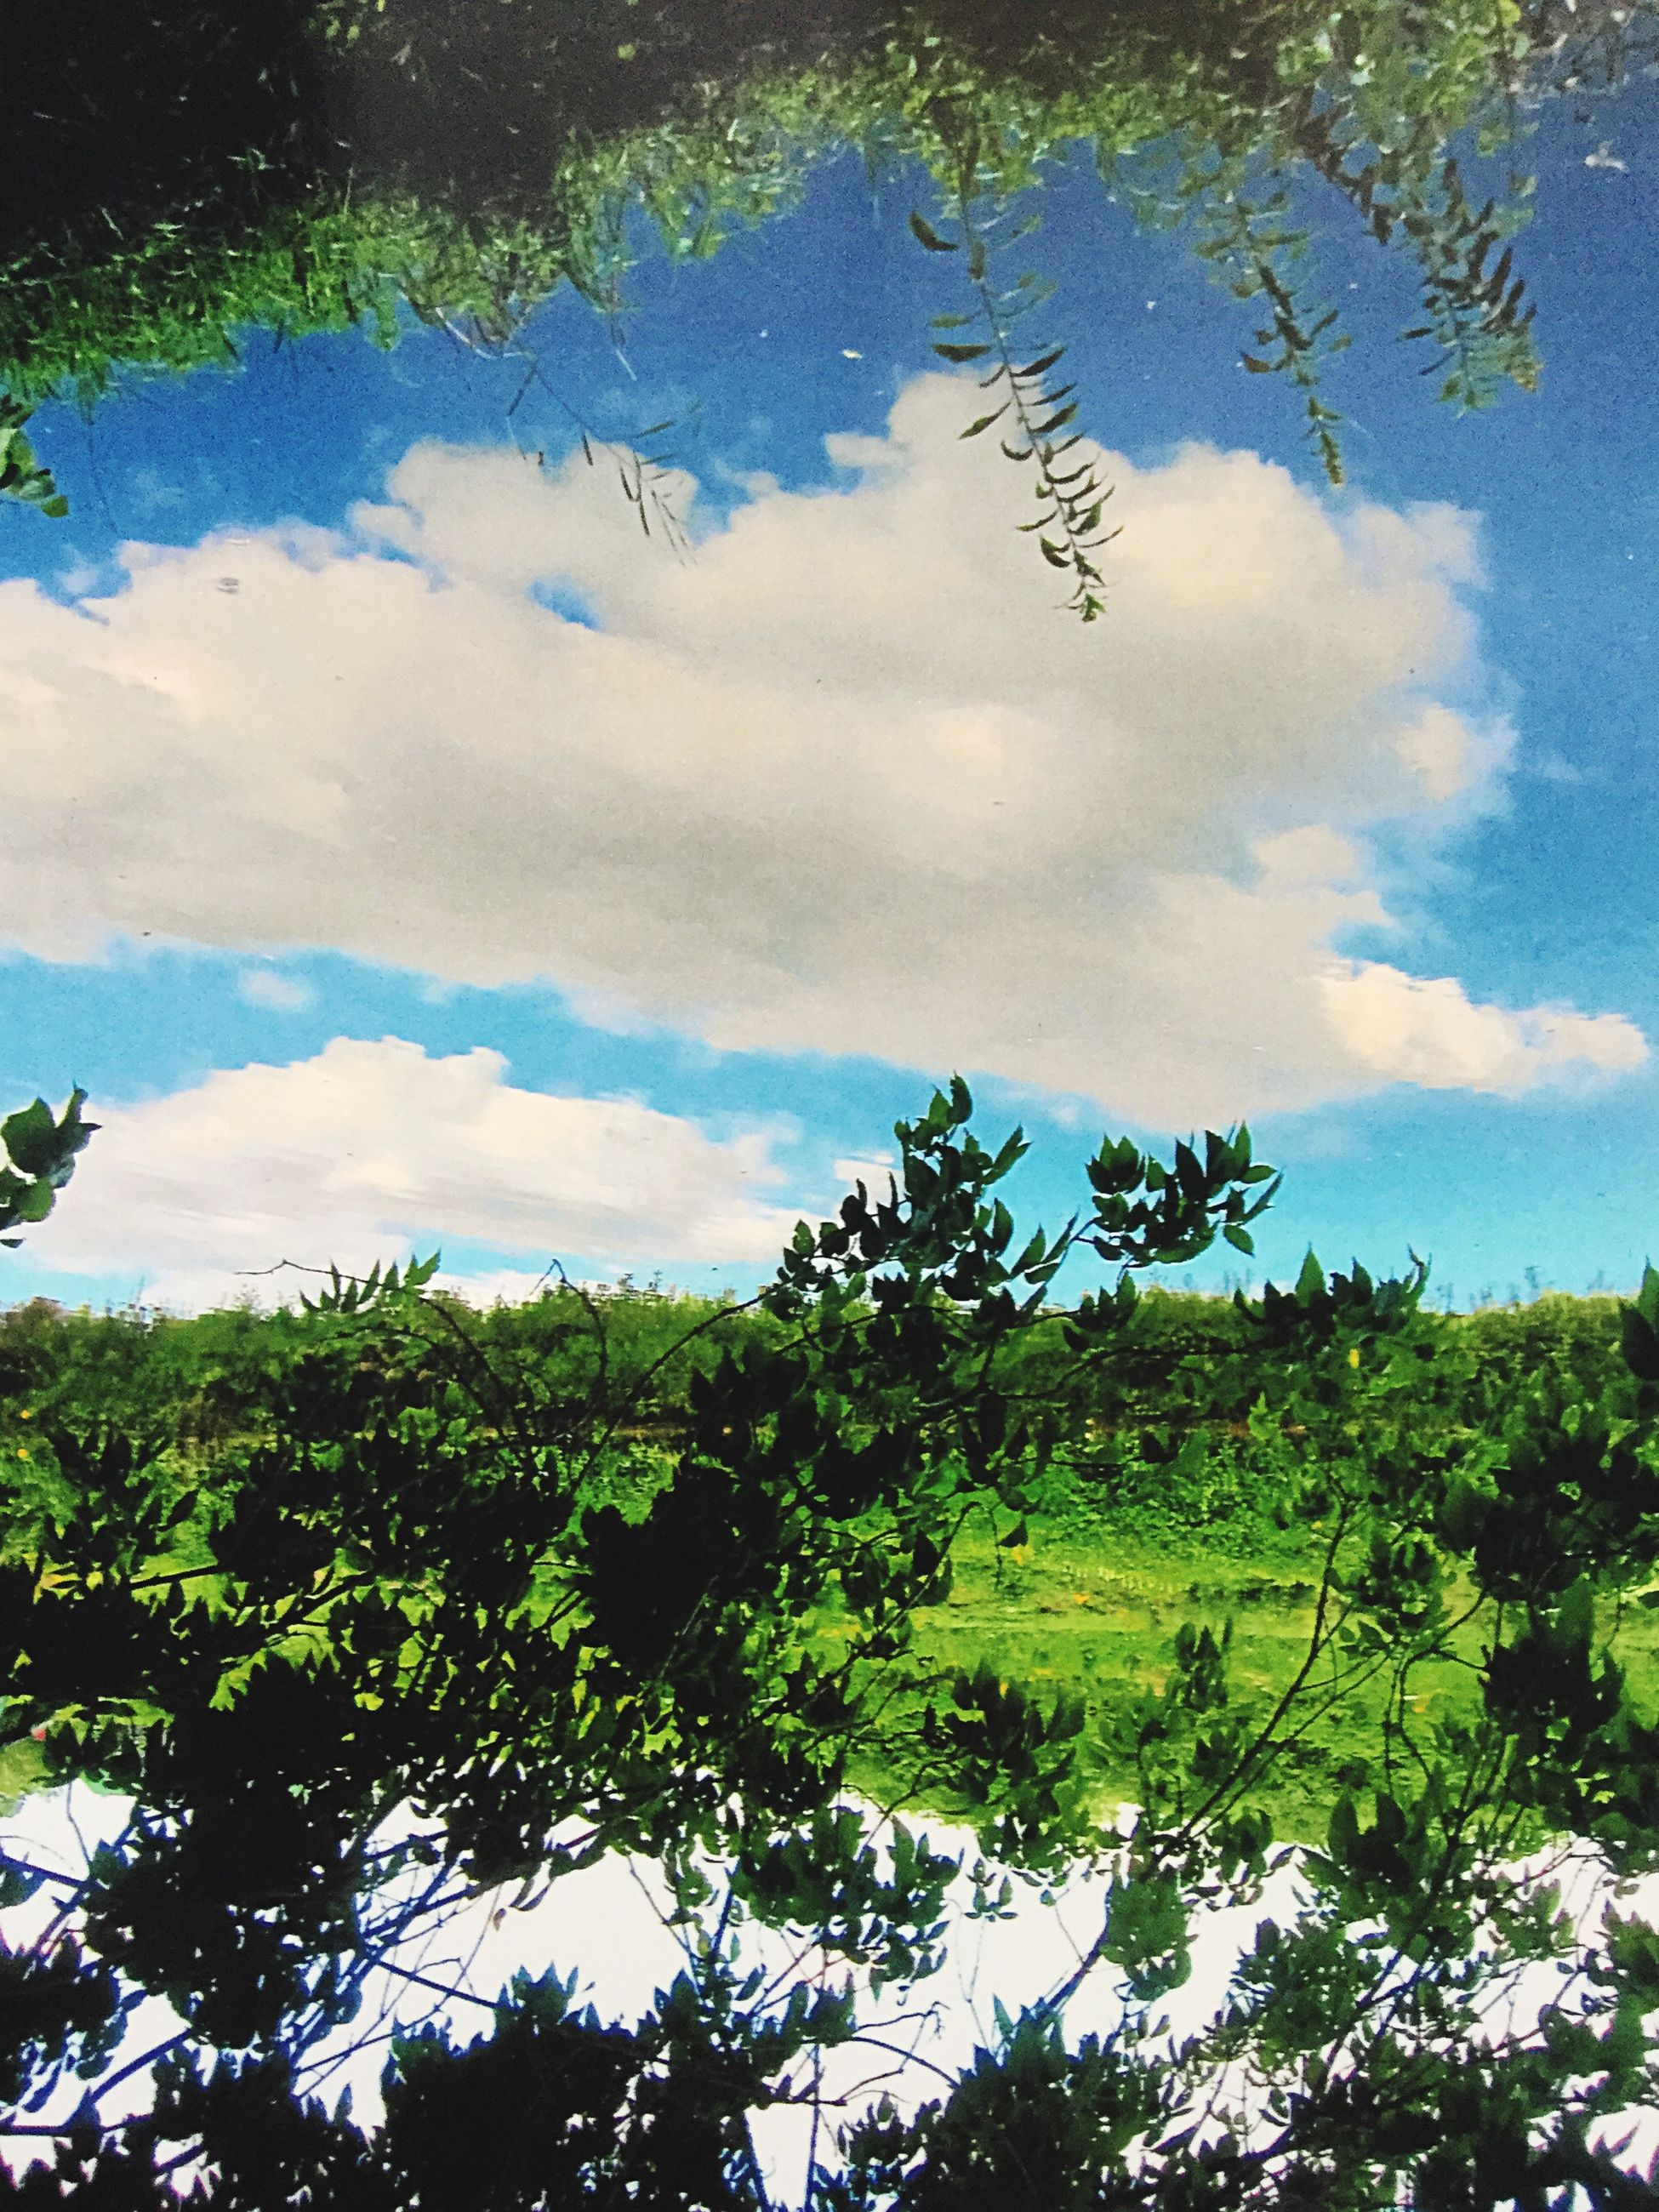 tree, sky, cloud - sky, tranquility, growth, tranquil scene, beauty in nature, nature, scenics, green color, cloud, cloudy, branch, low angle view, blue, day, idyllic, outdoors, no people, lush foliage